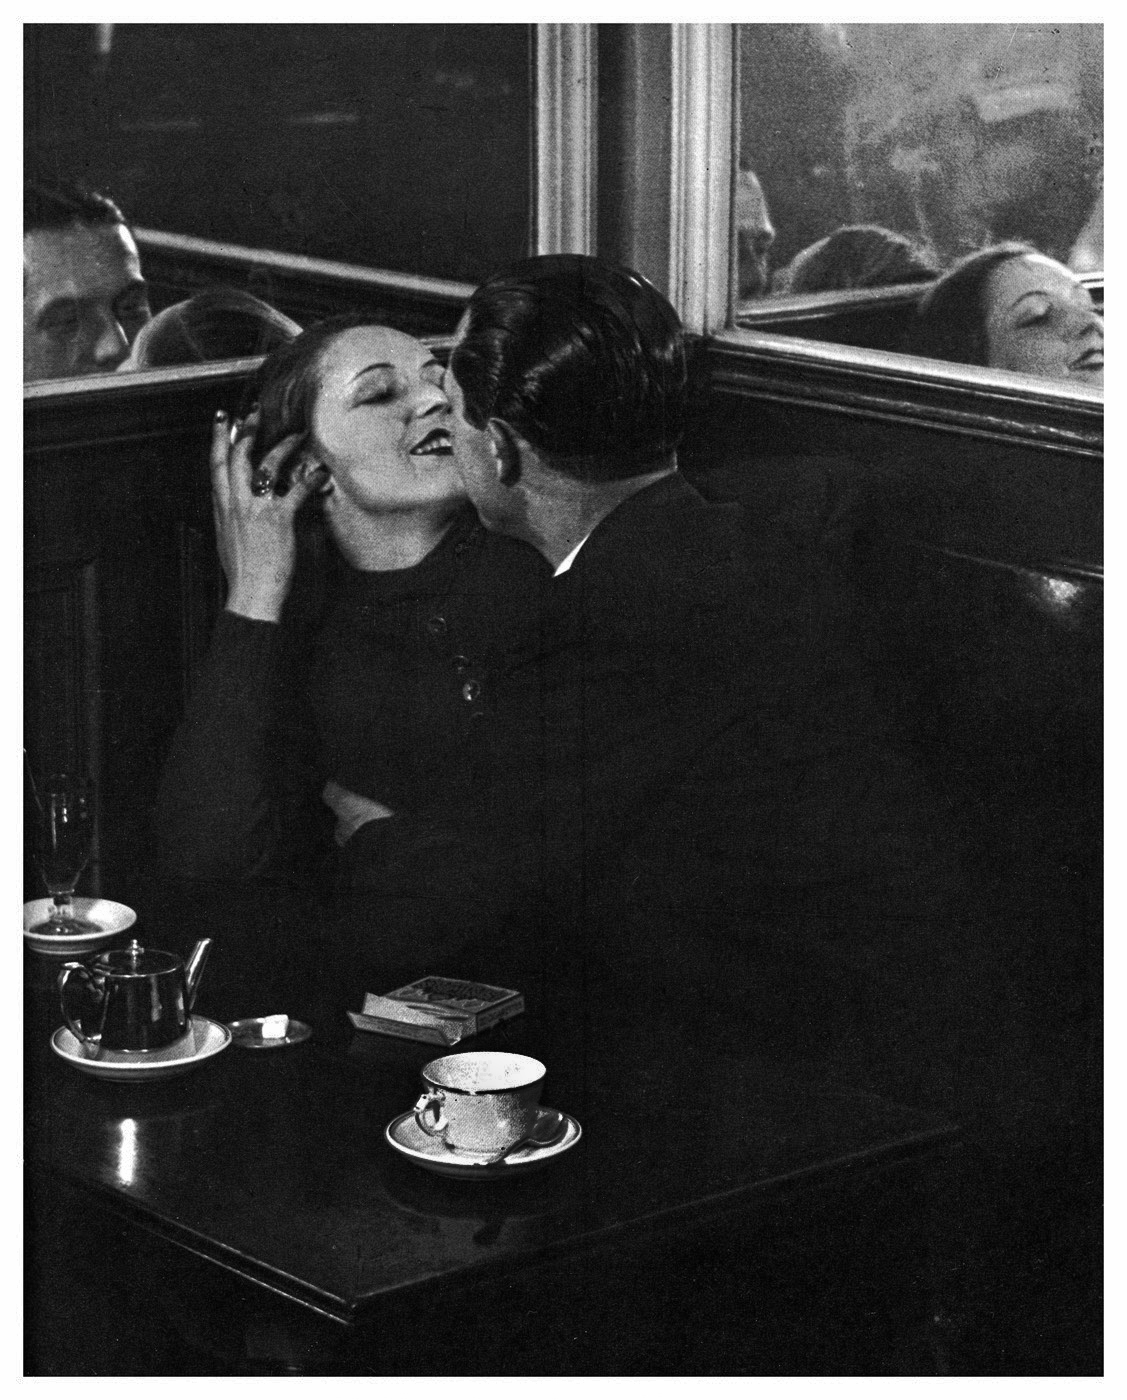 brassai-lovers-in-cafe-paris-1932